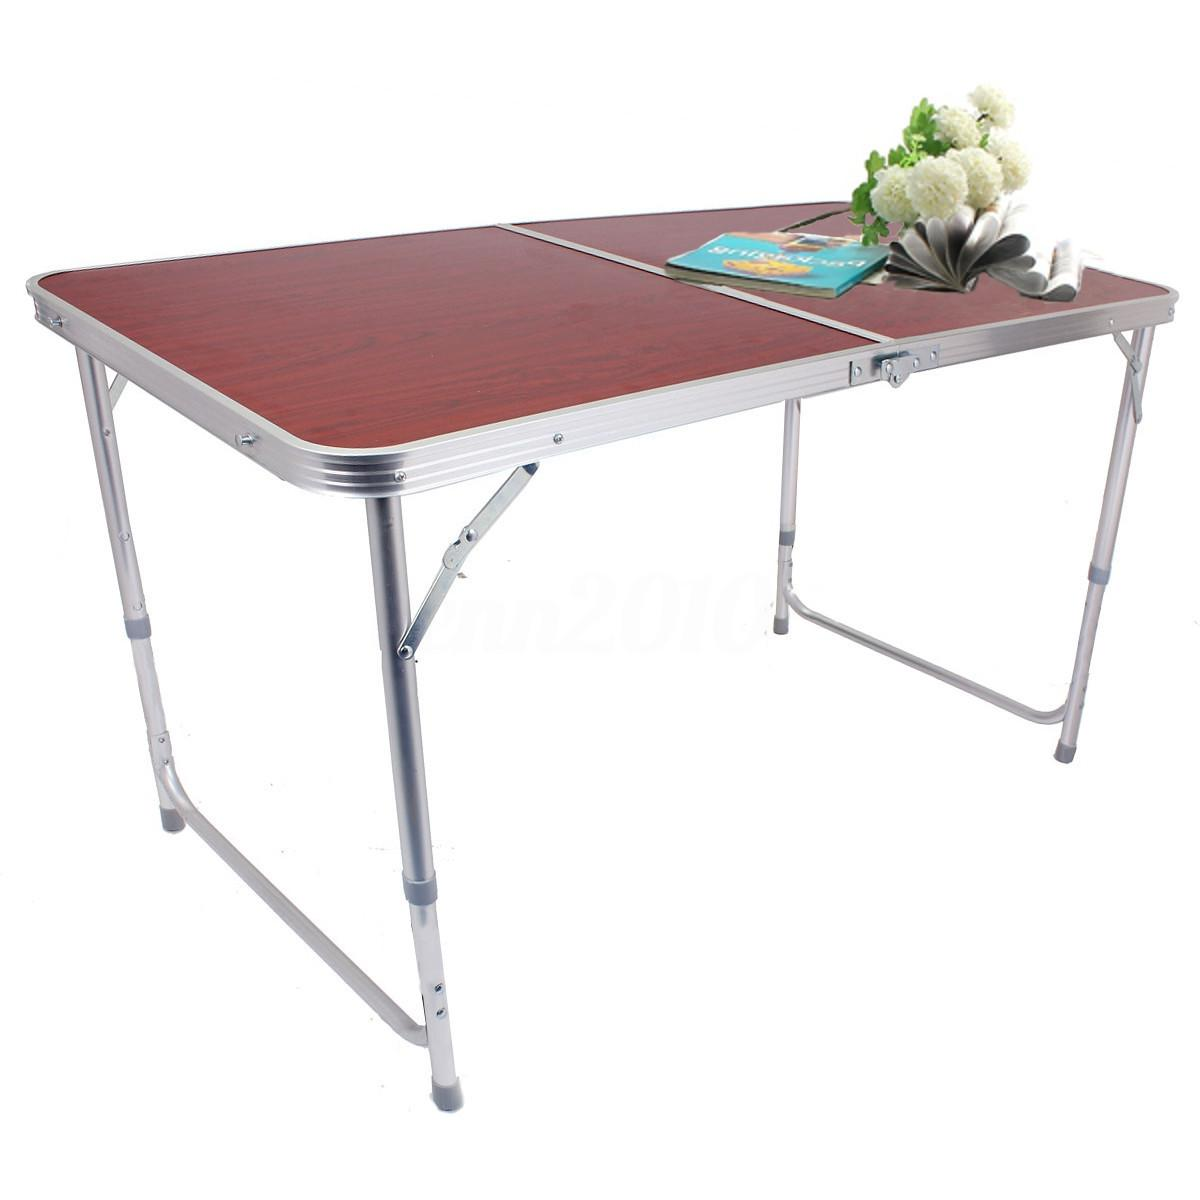 4ft Folding Table Portable Plastic Indoor Outdoor Picnic